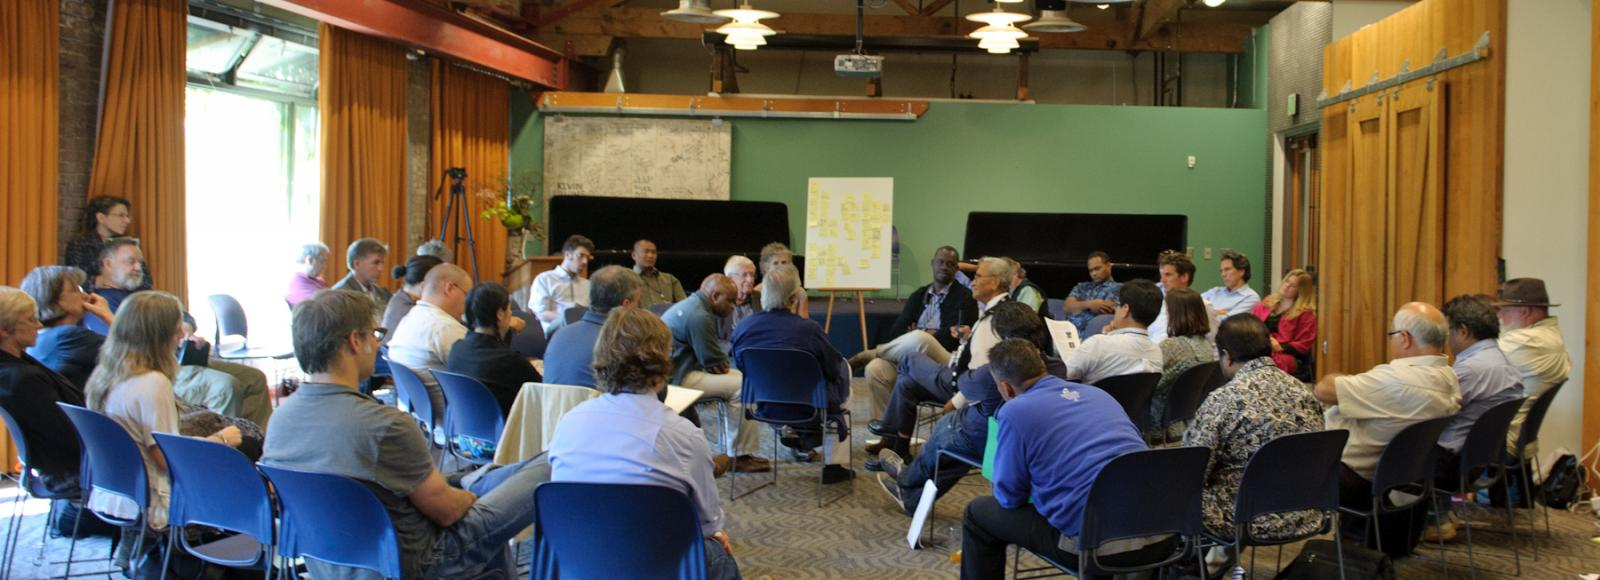 50+ people sitting in a conference, Ecotrust, Portland, BFJCC